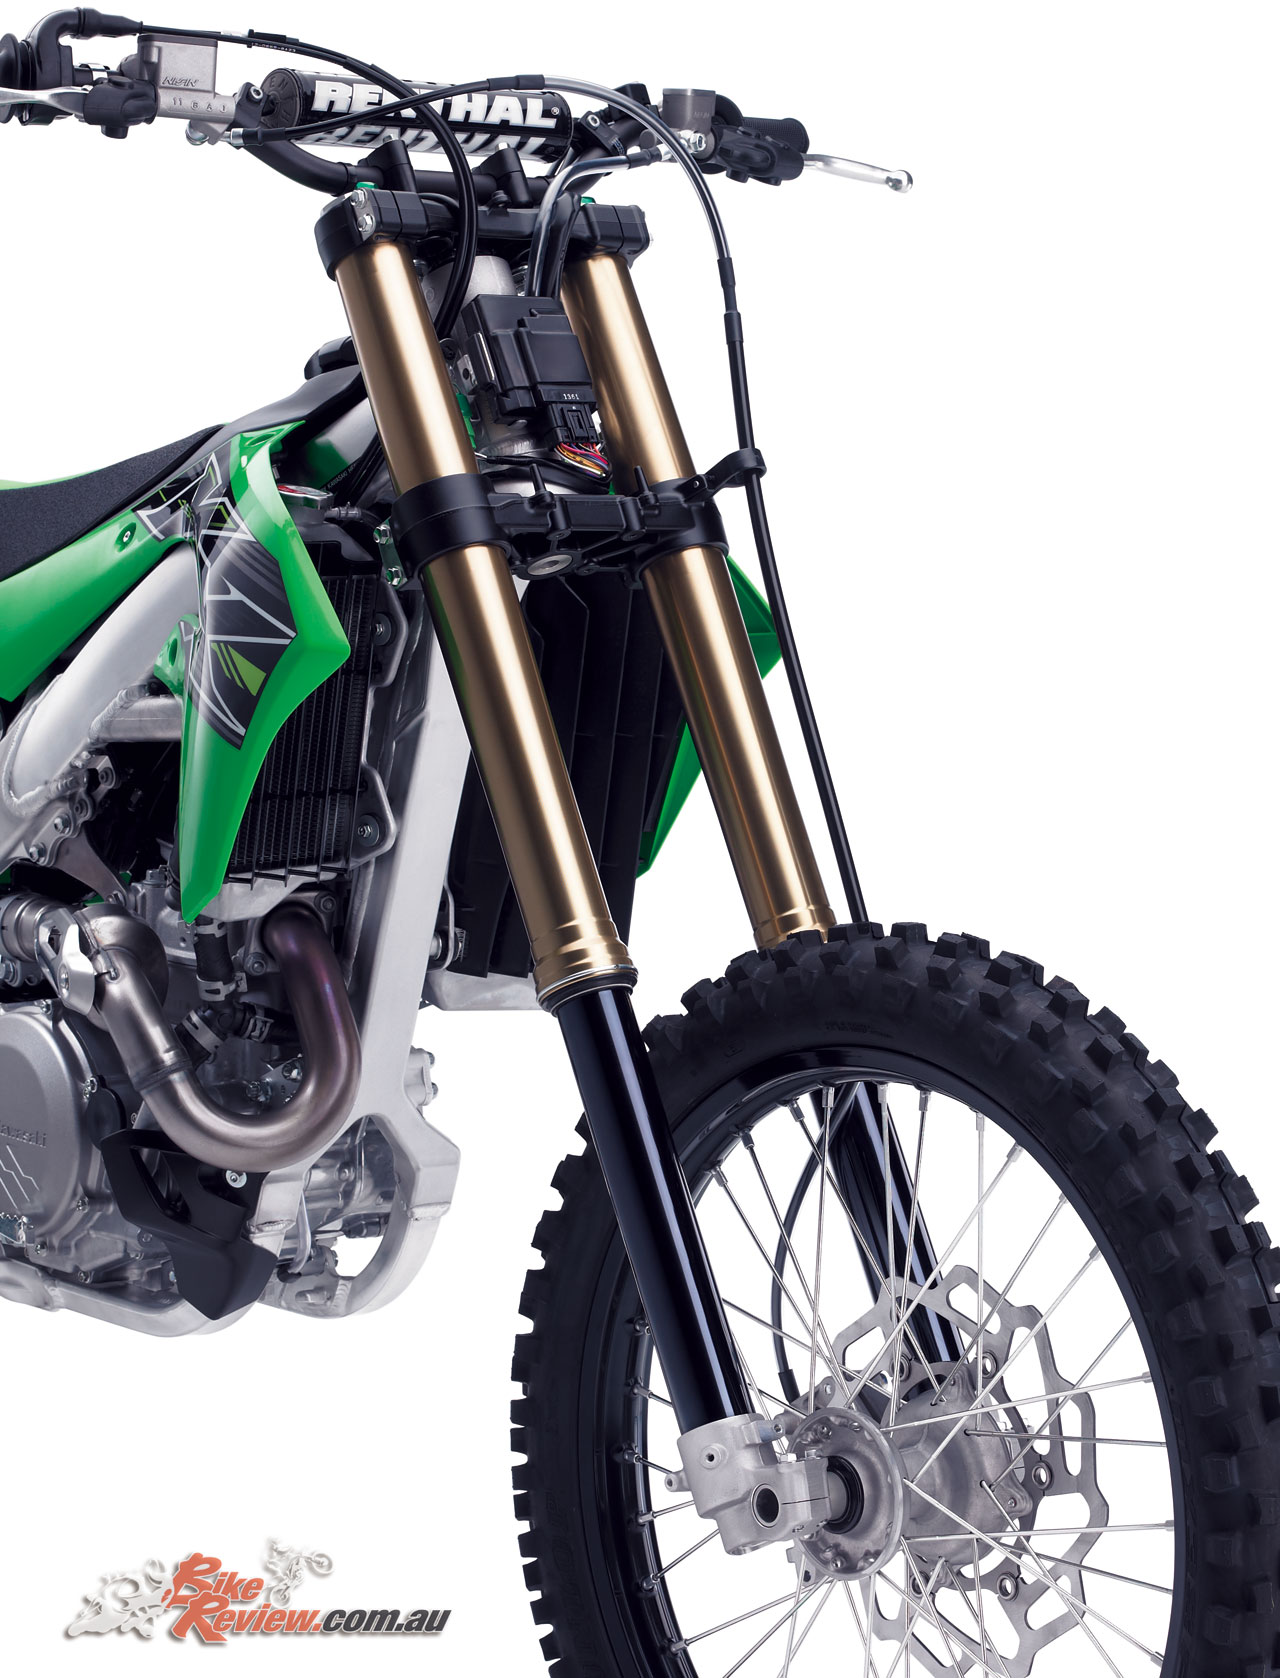 2019 also marks a return to spring forks with the KX450, with Showa 49mm forks fitted